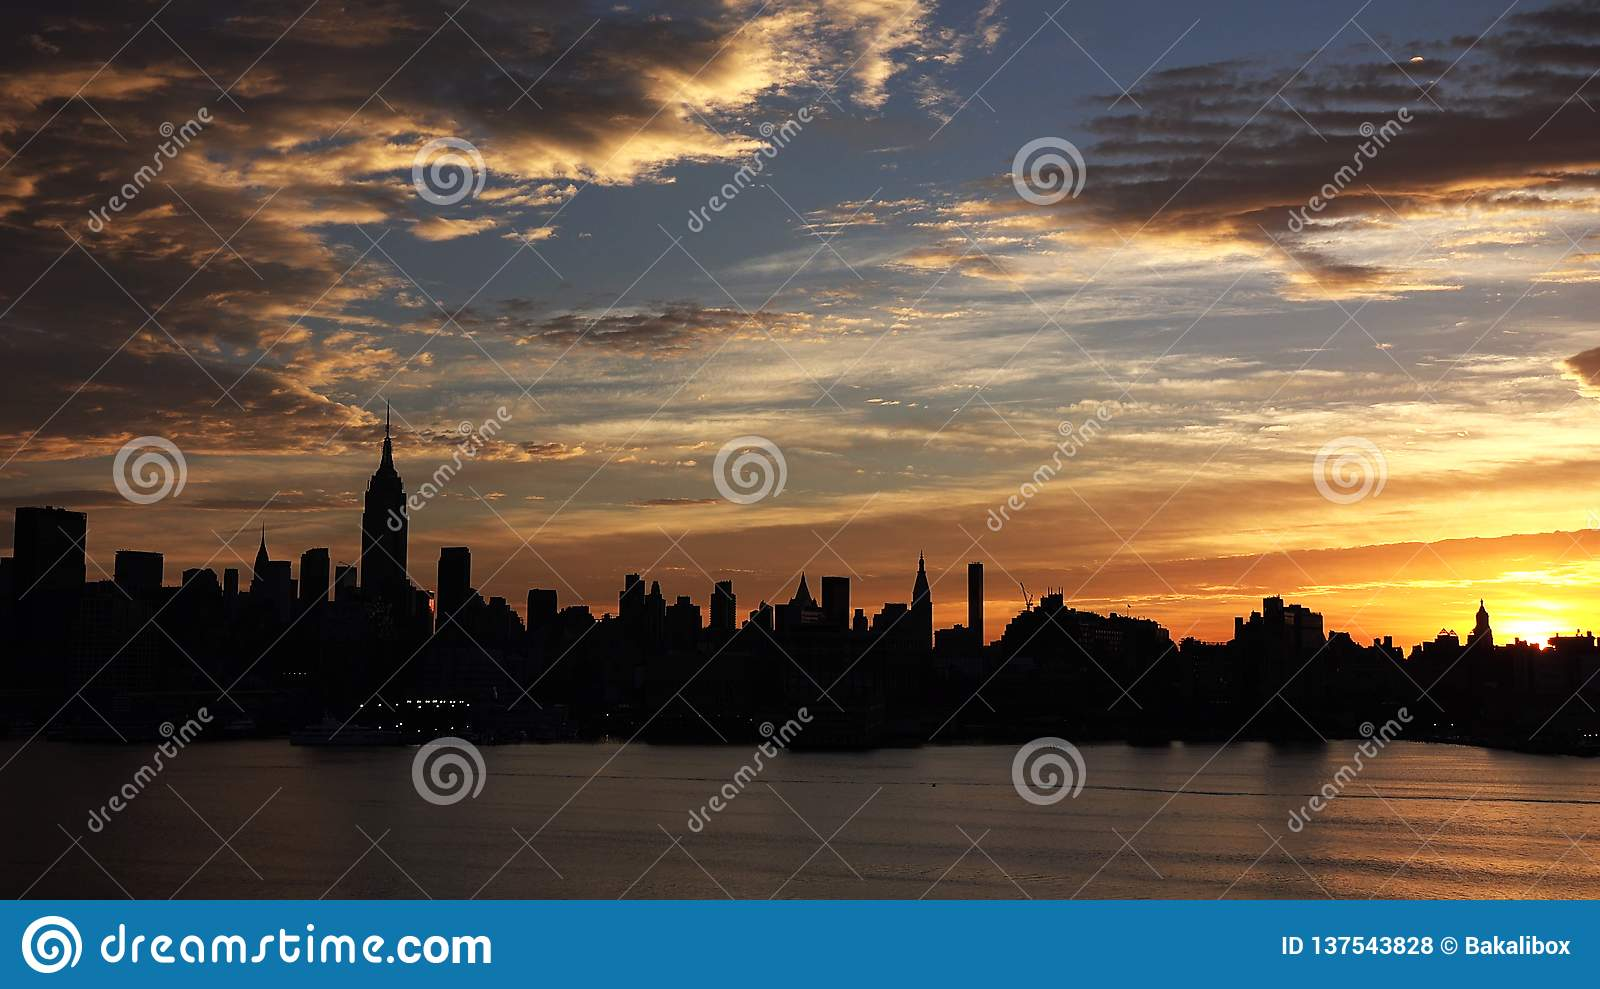 New York City skyline with urban skyscrapers at sunset HD